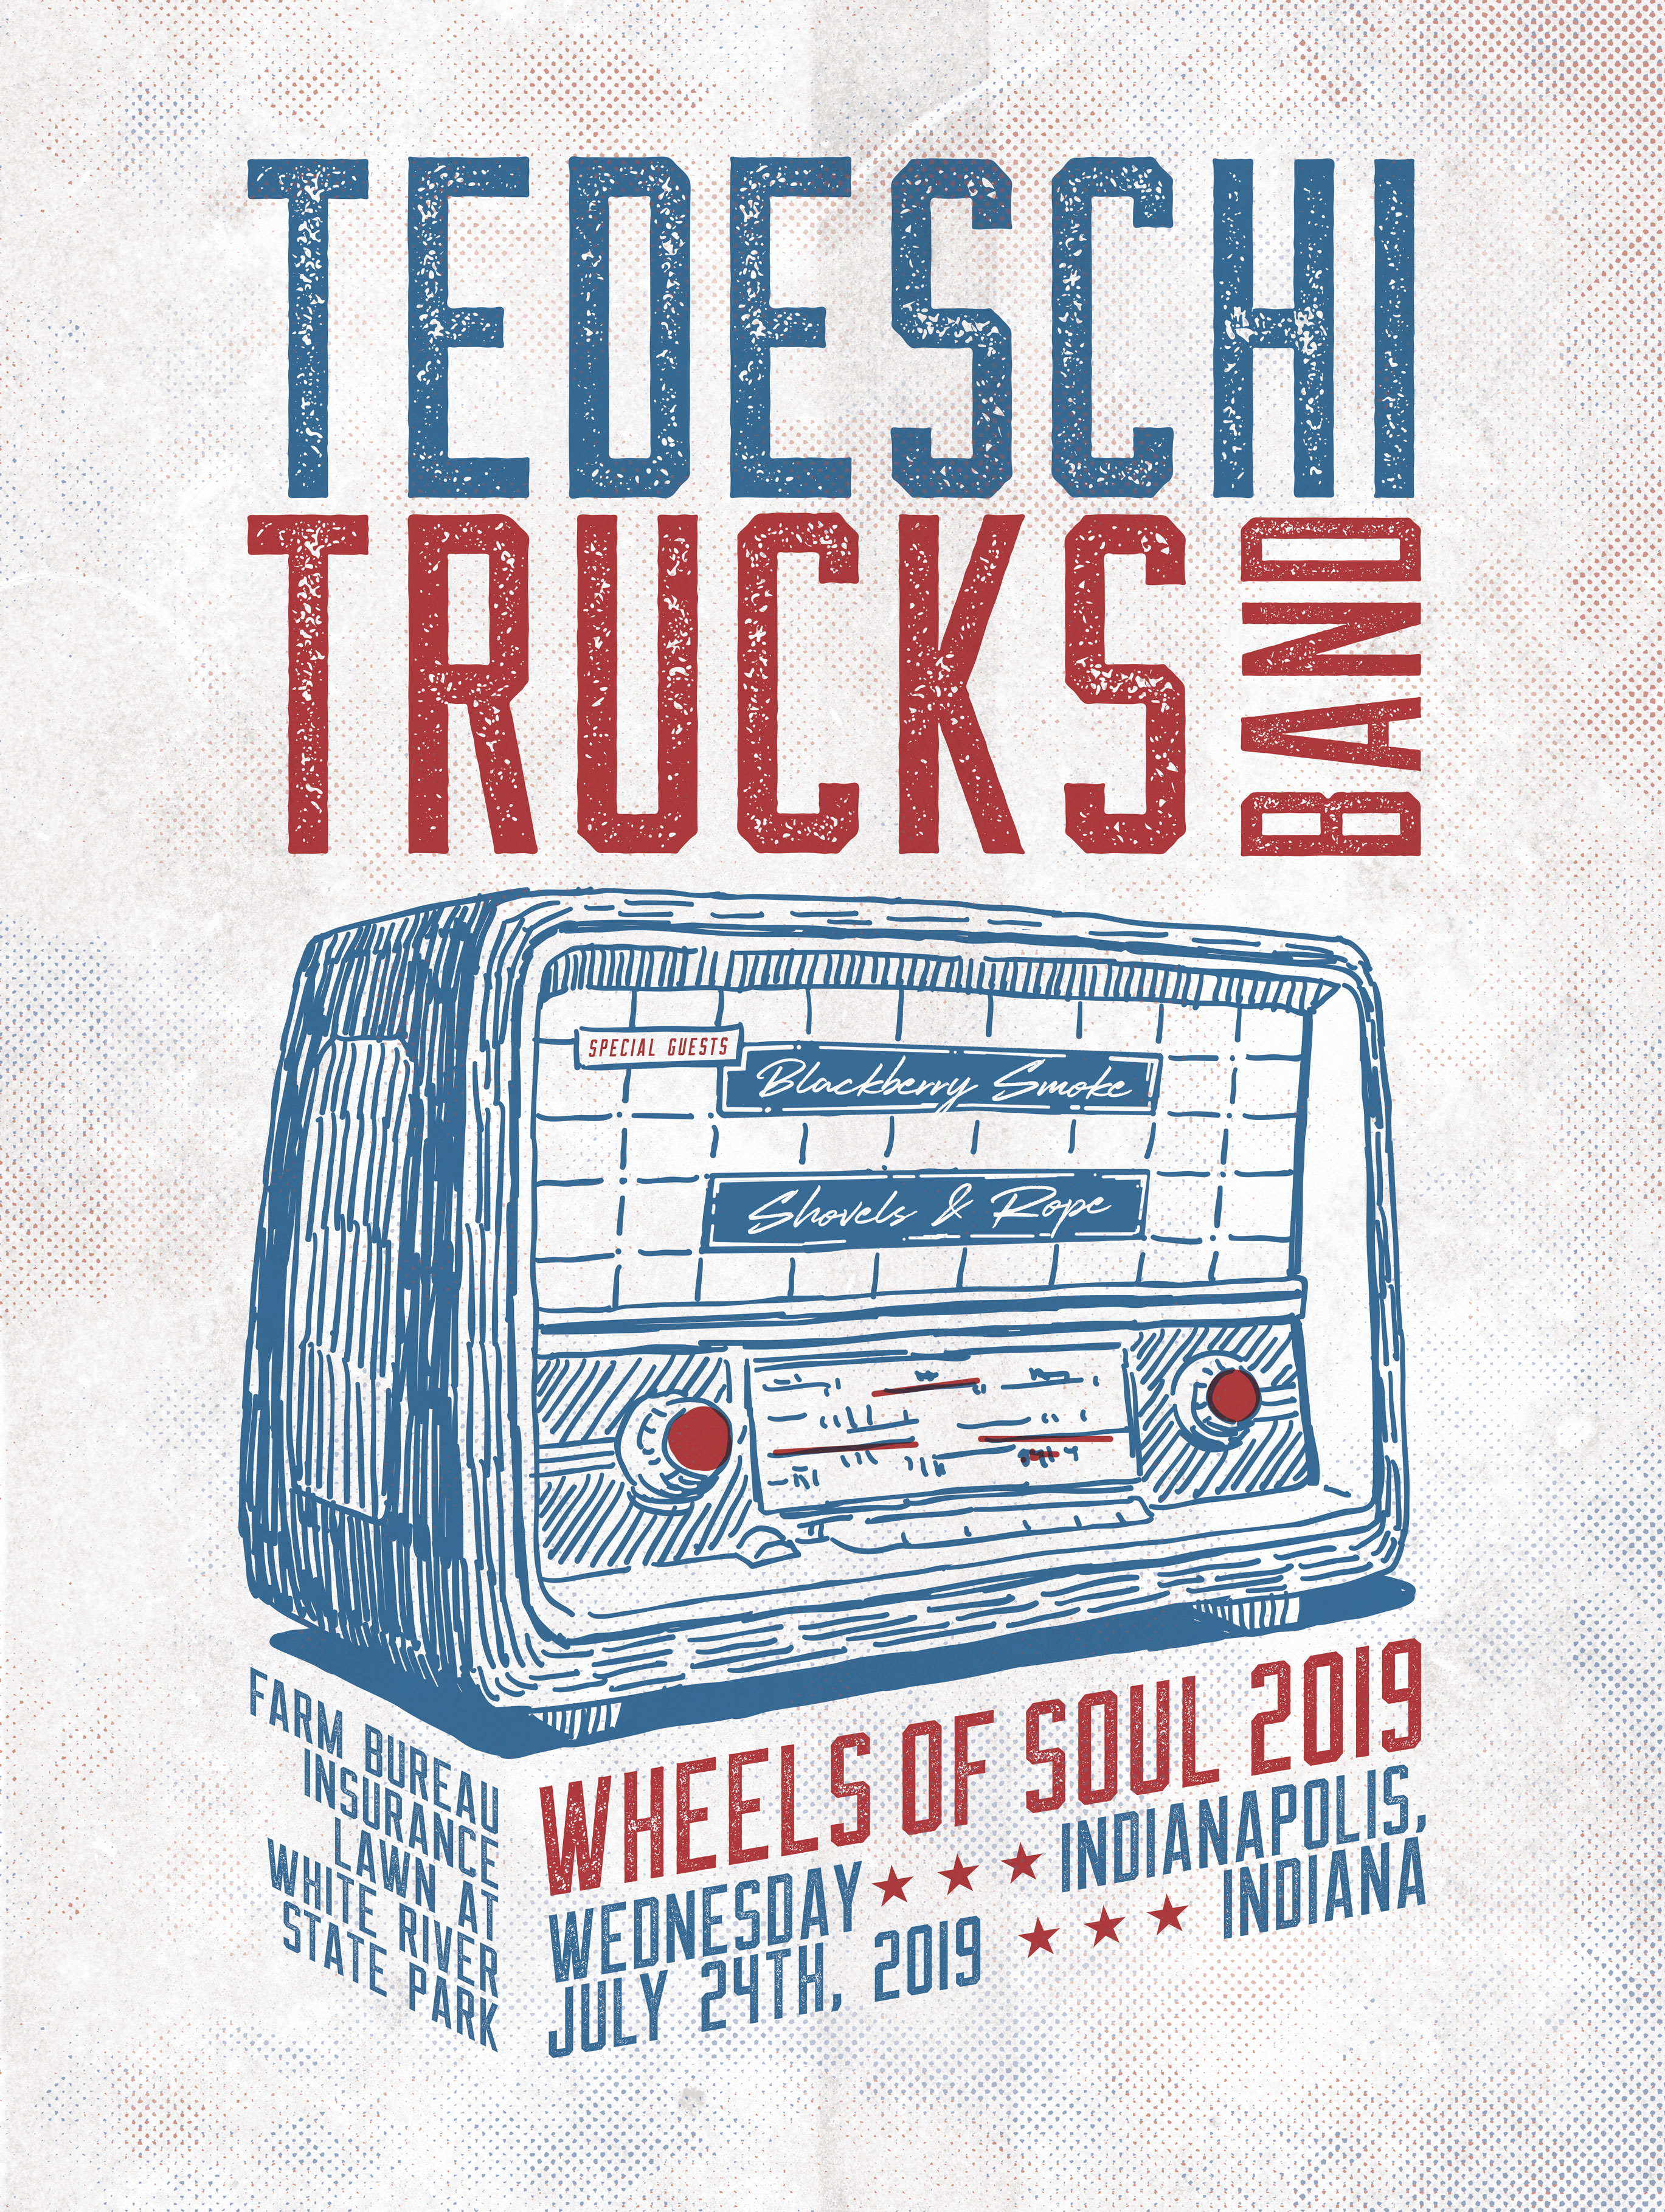 Tedeschi Trucks Band - White River